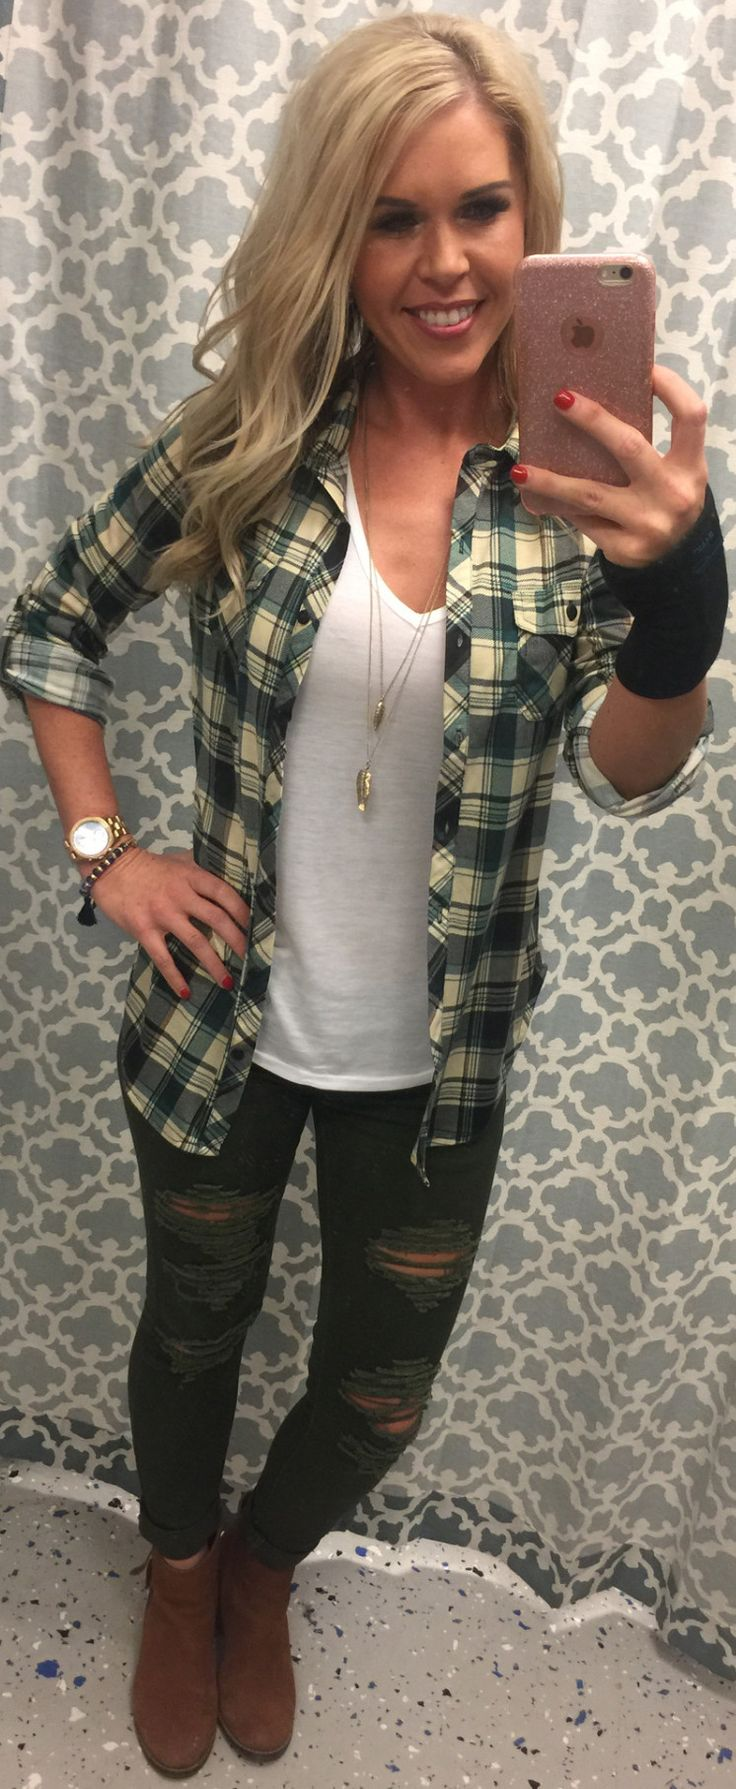 Flannel fashion makeup   best Girls clothes images on Pinterest  Girl clothing Pumpkin